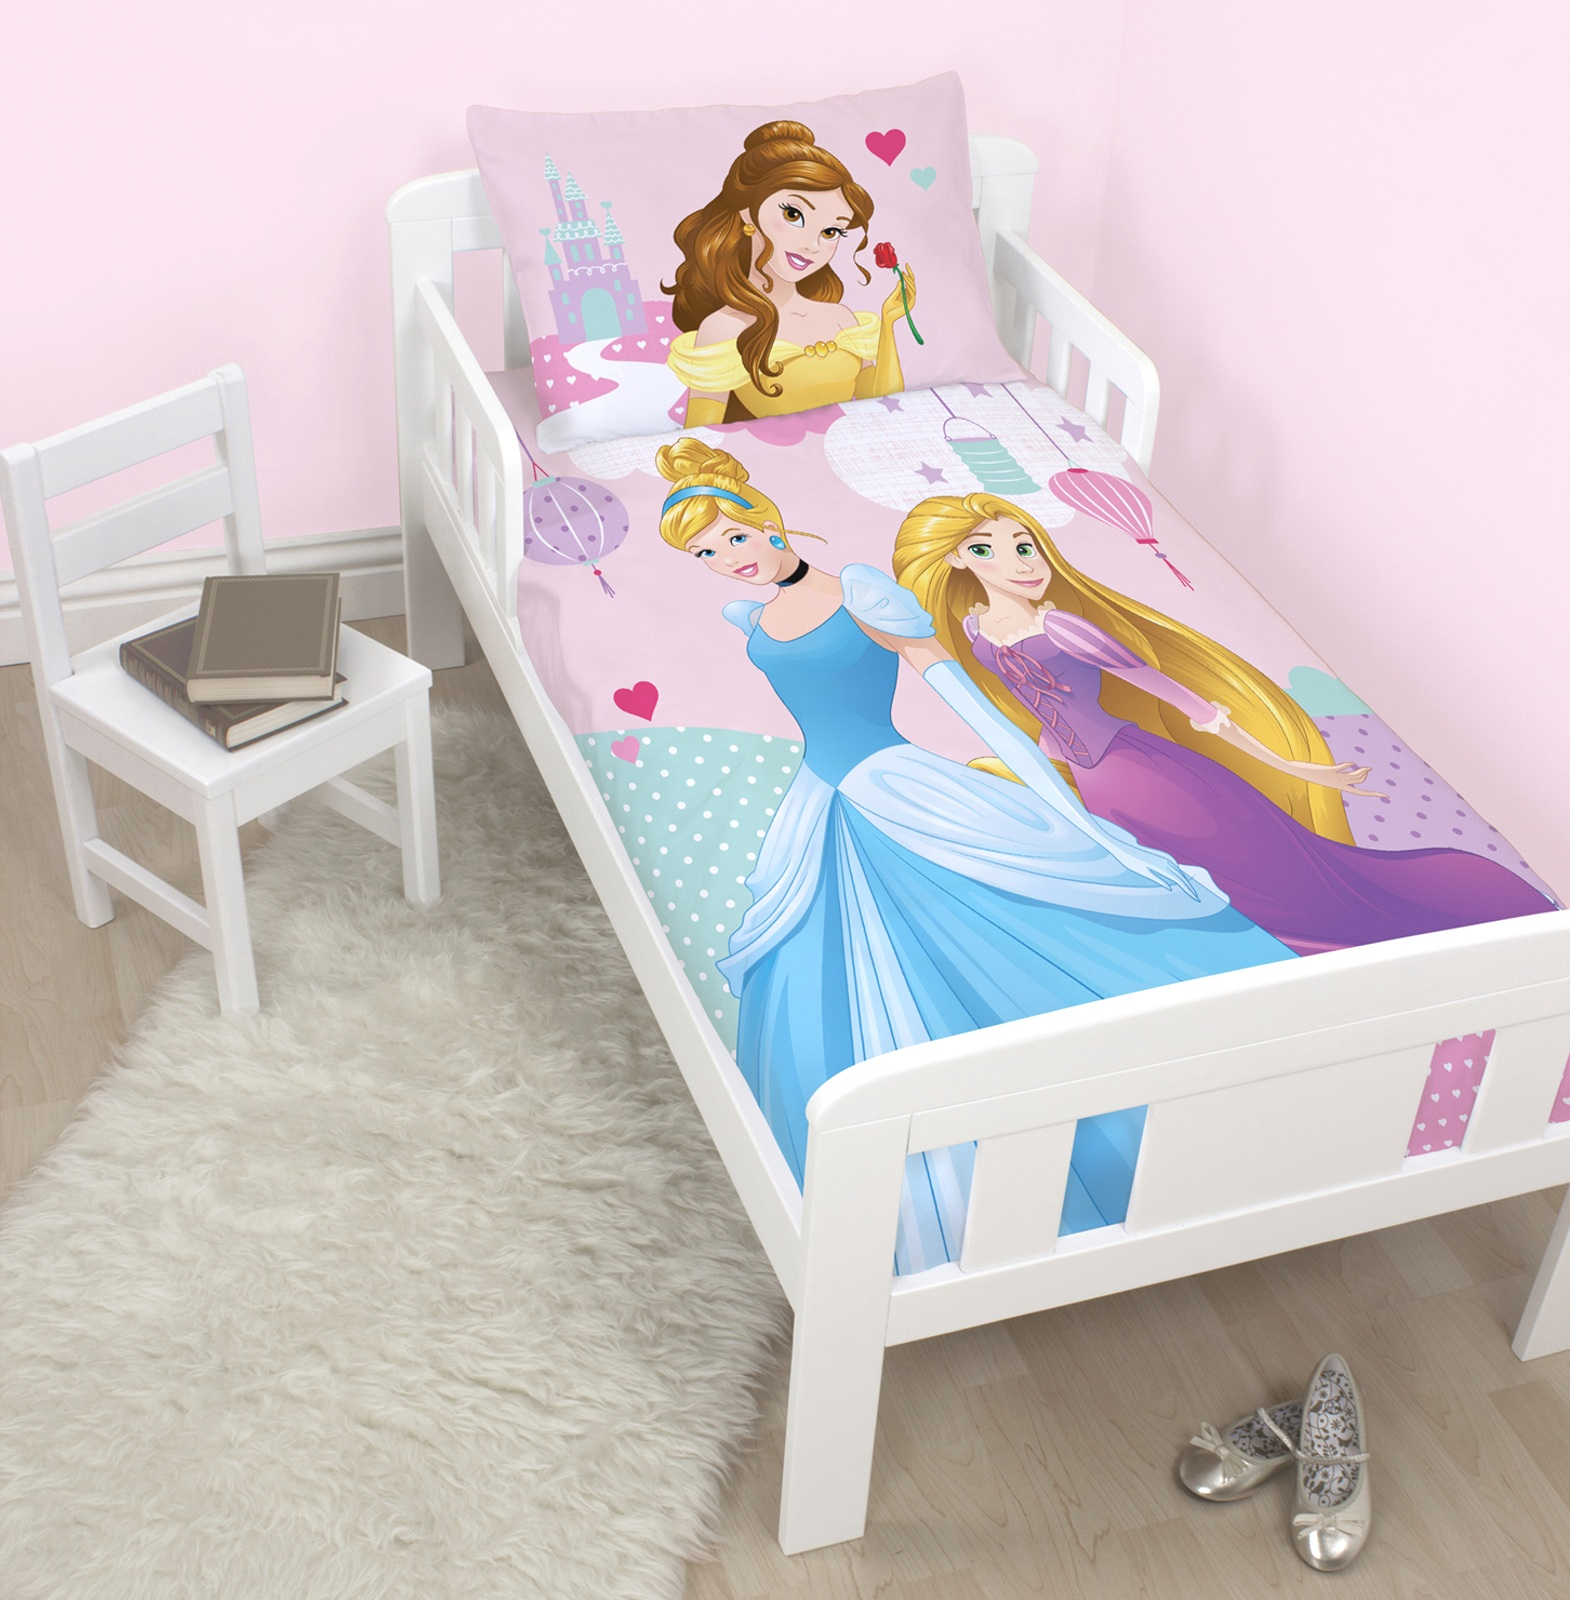 Disney princess 39 enchanteur 39 junior ensemble de housse de for Ensemble couette